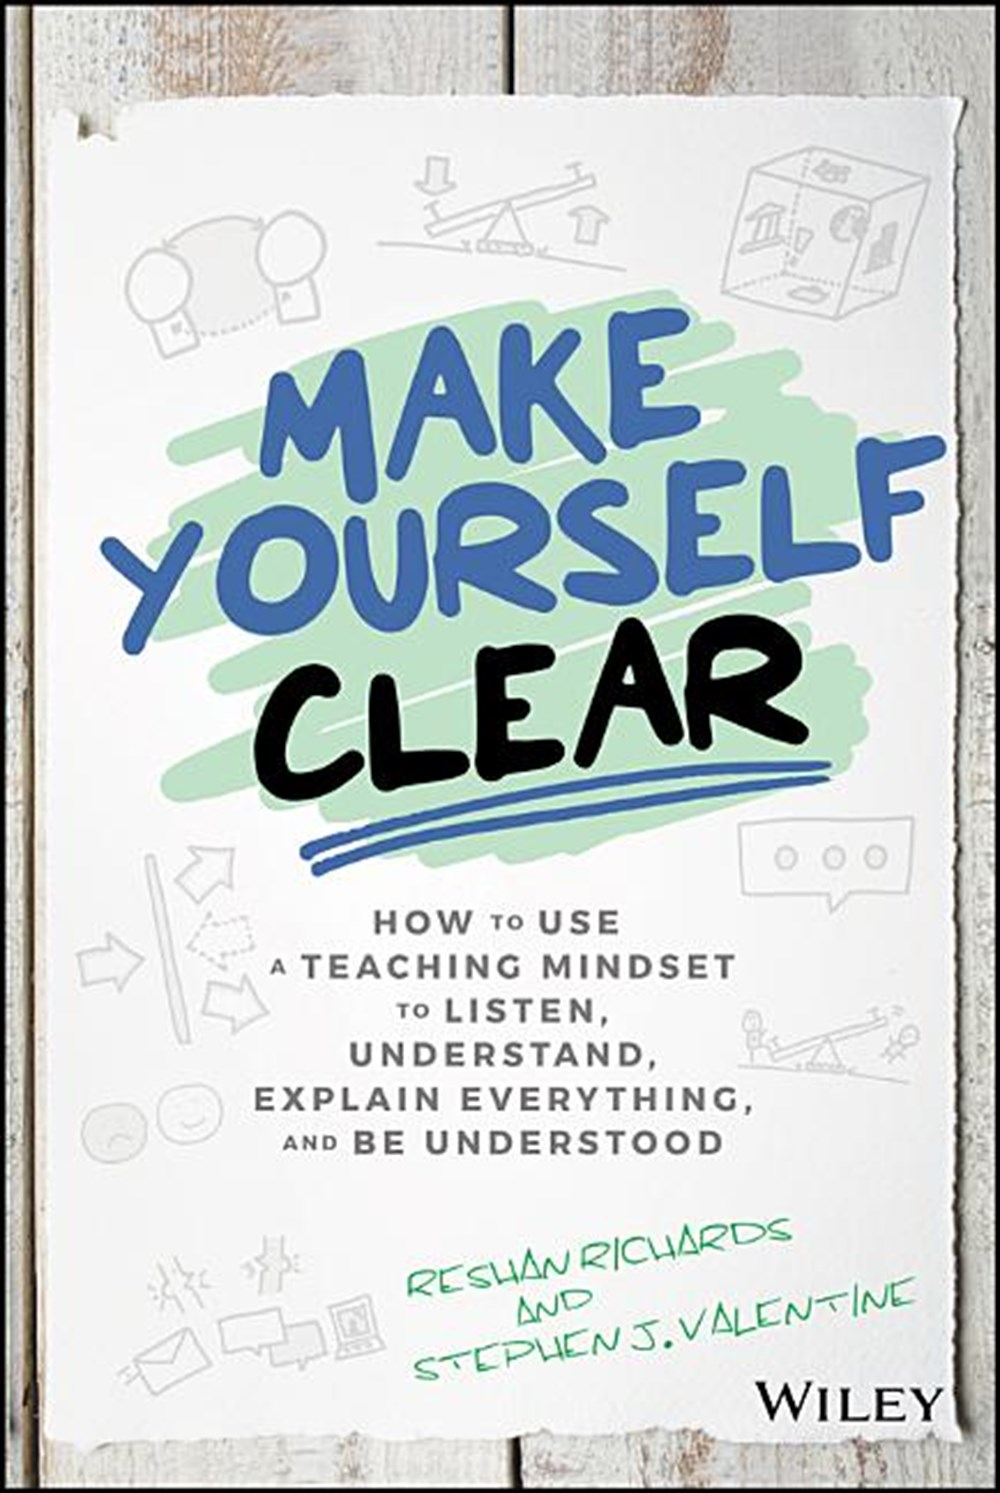 Make Yourself Clear: How to Use a Teaching Mindset to Listen, Understand, Explain Everything, and Be